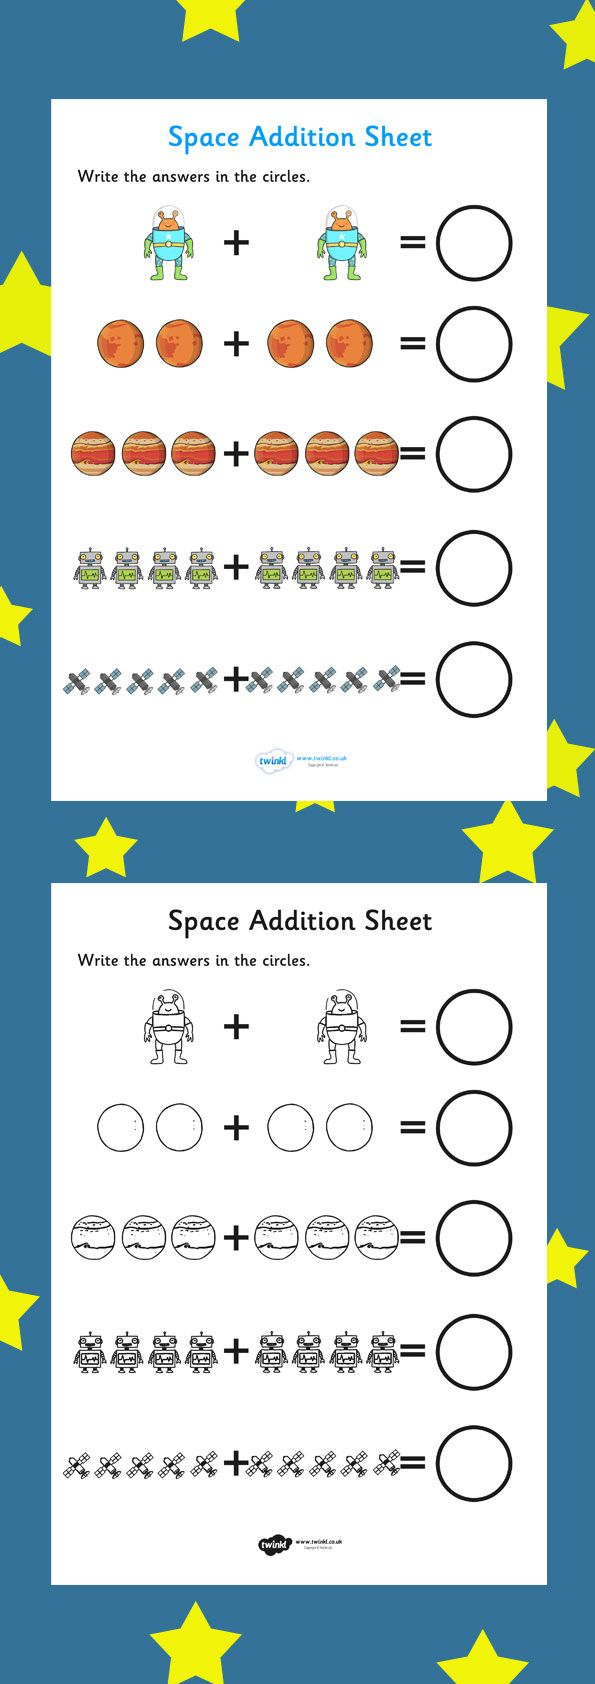 Space Themed Addition Sheet Space Theme Classroom Addition Kindergarten Education Lesson Plans Year addition worksheets twinkl